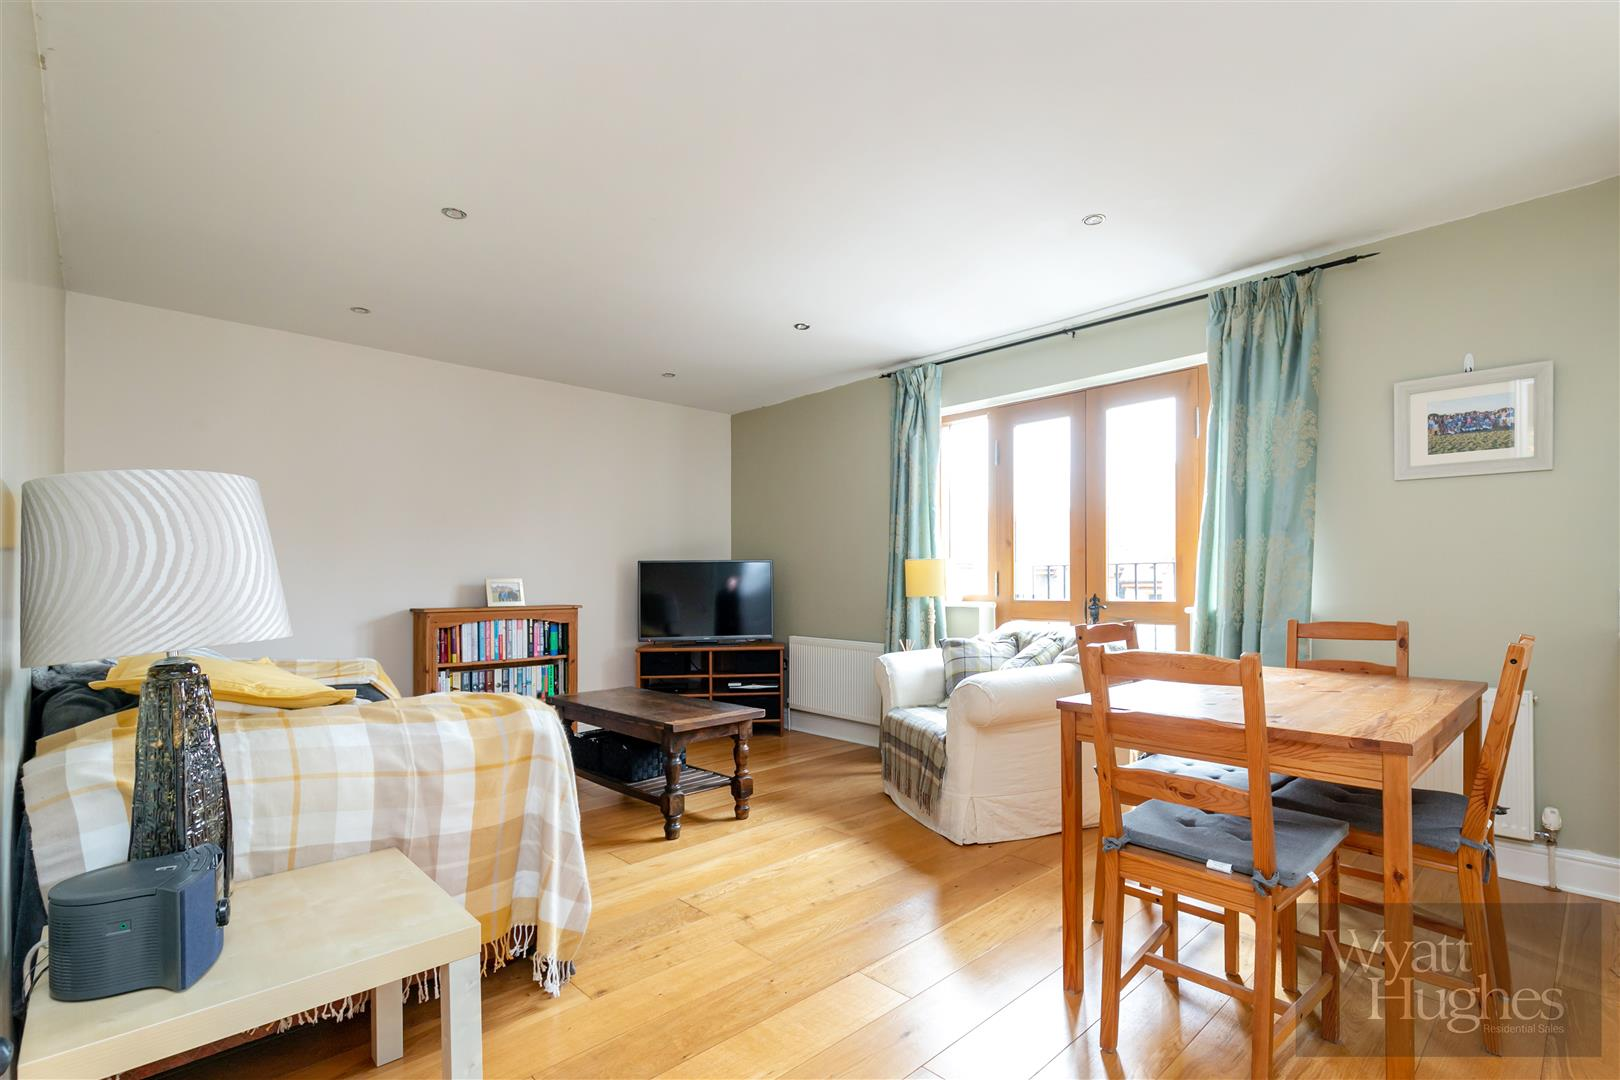 1 bed flat for sale in Colemans Way, Hurst Green, TN19